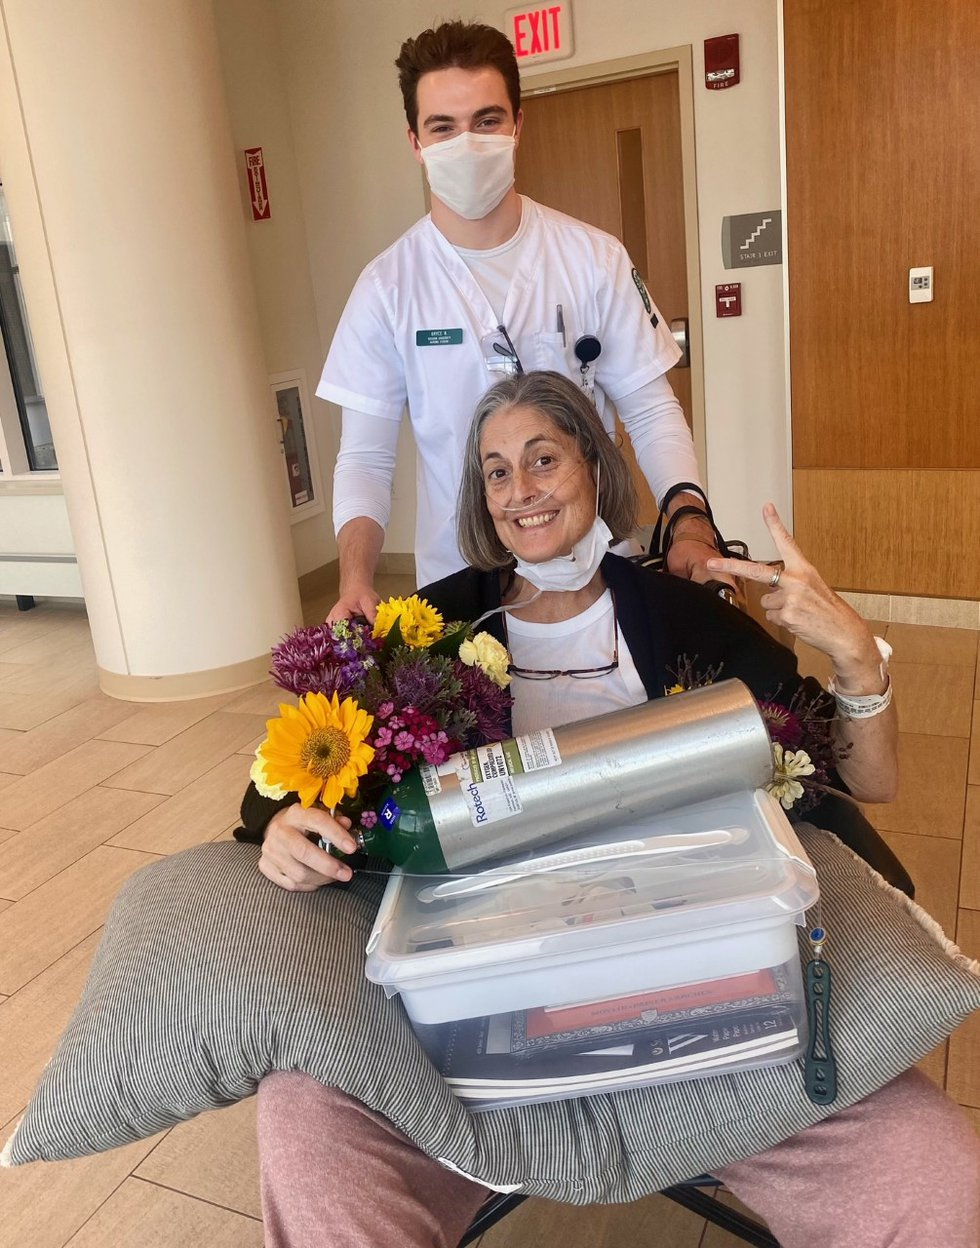 Winterport woman hospitalized with COVID for nearly a month, released Sunday afternoon